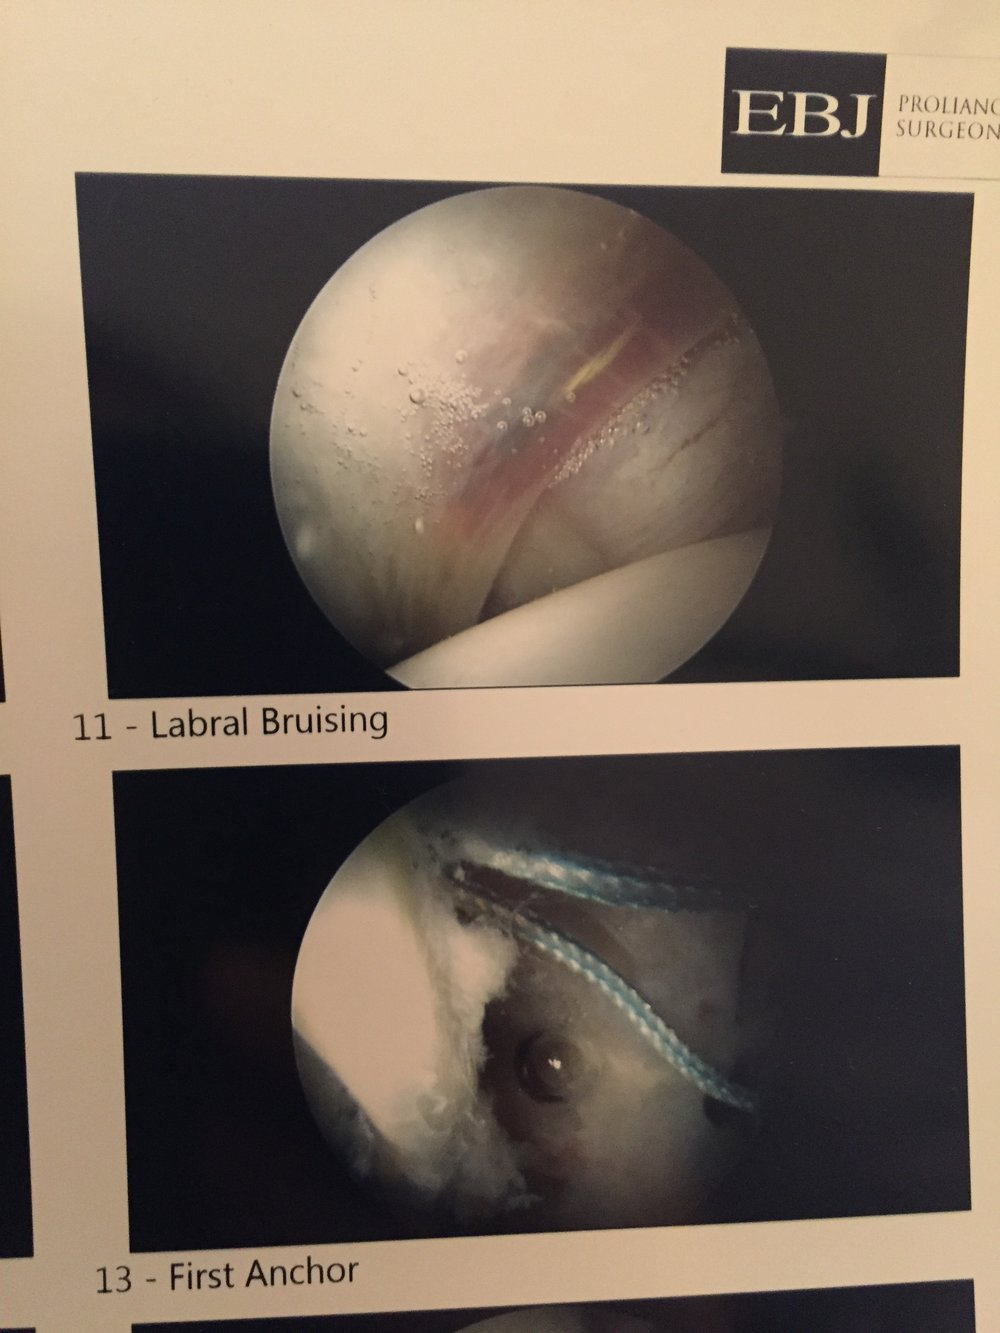 Apparently my labrum was bruised, no wonder it was uncomfortable all the time!  Plus, the first of 2 anchors being put in.